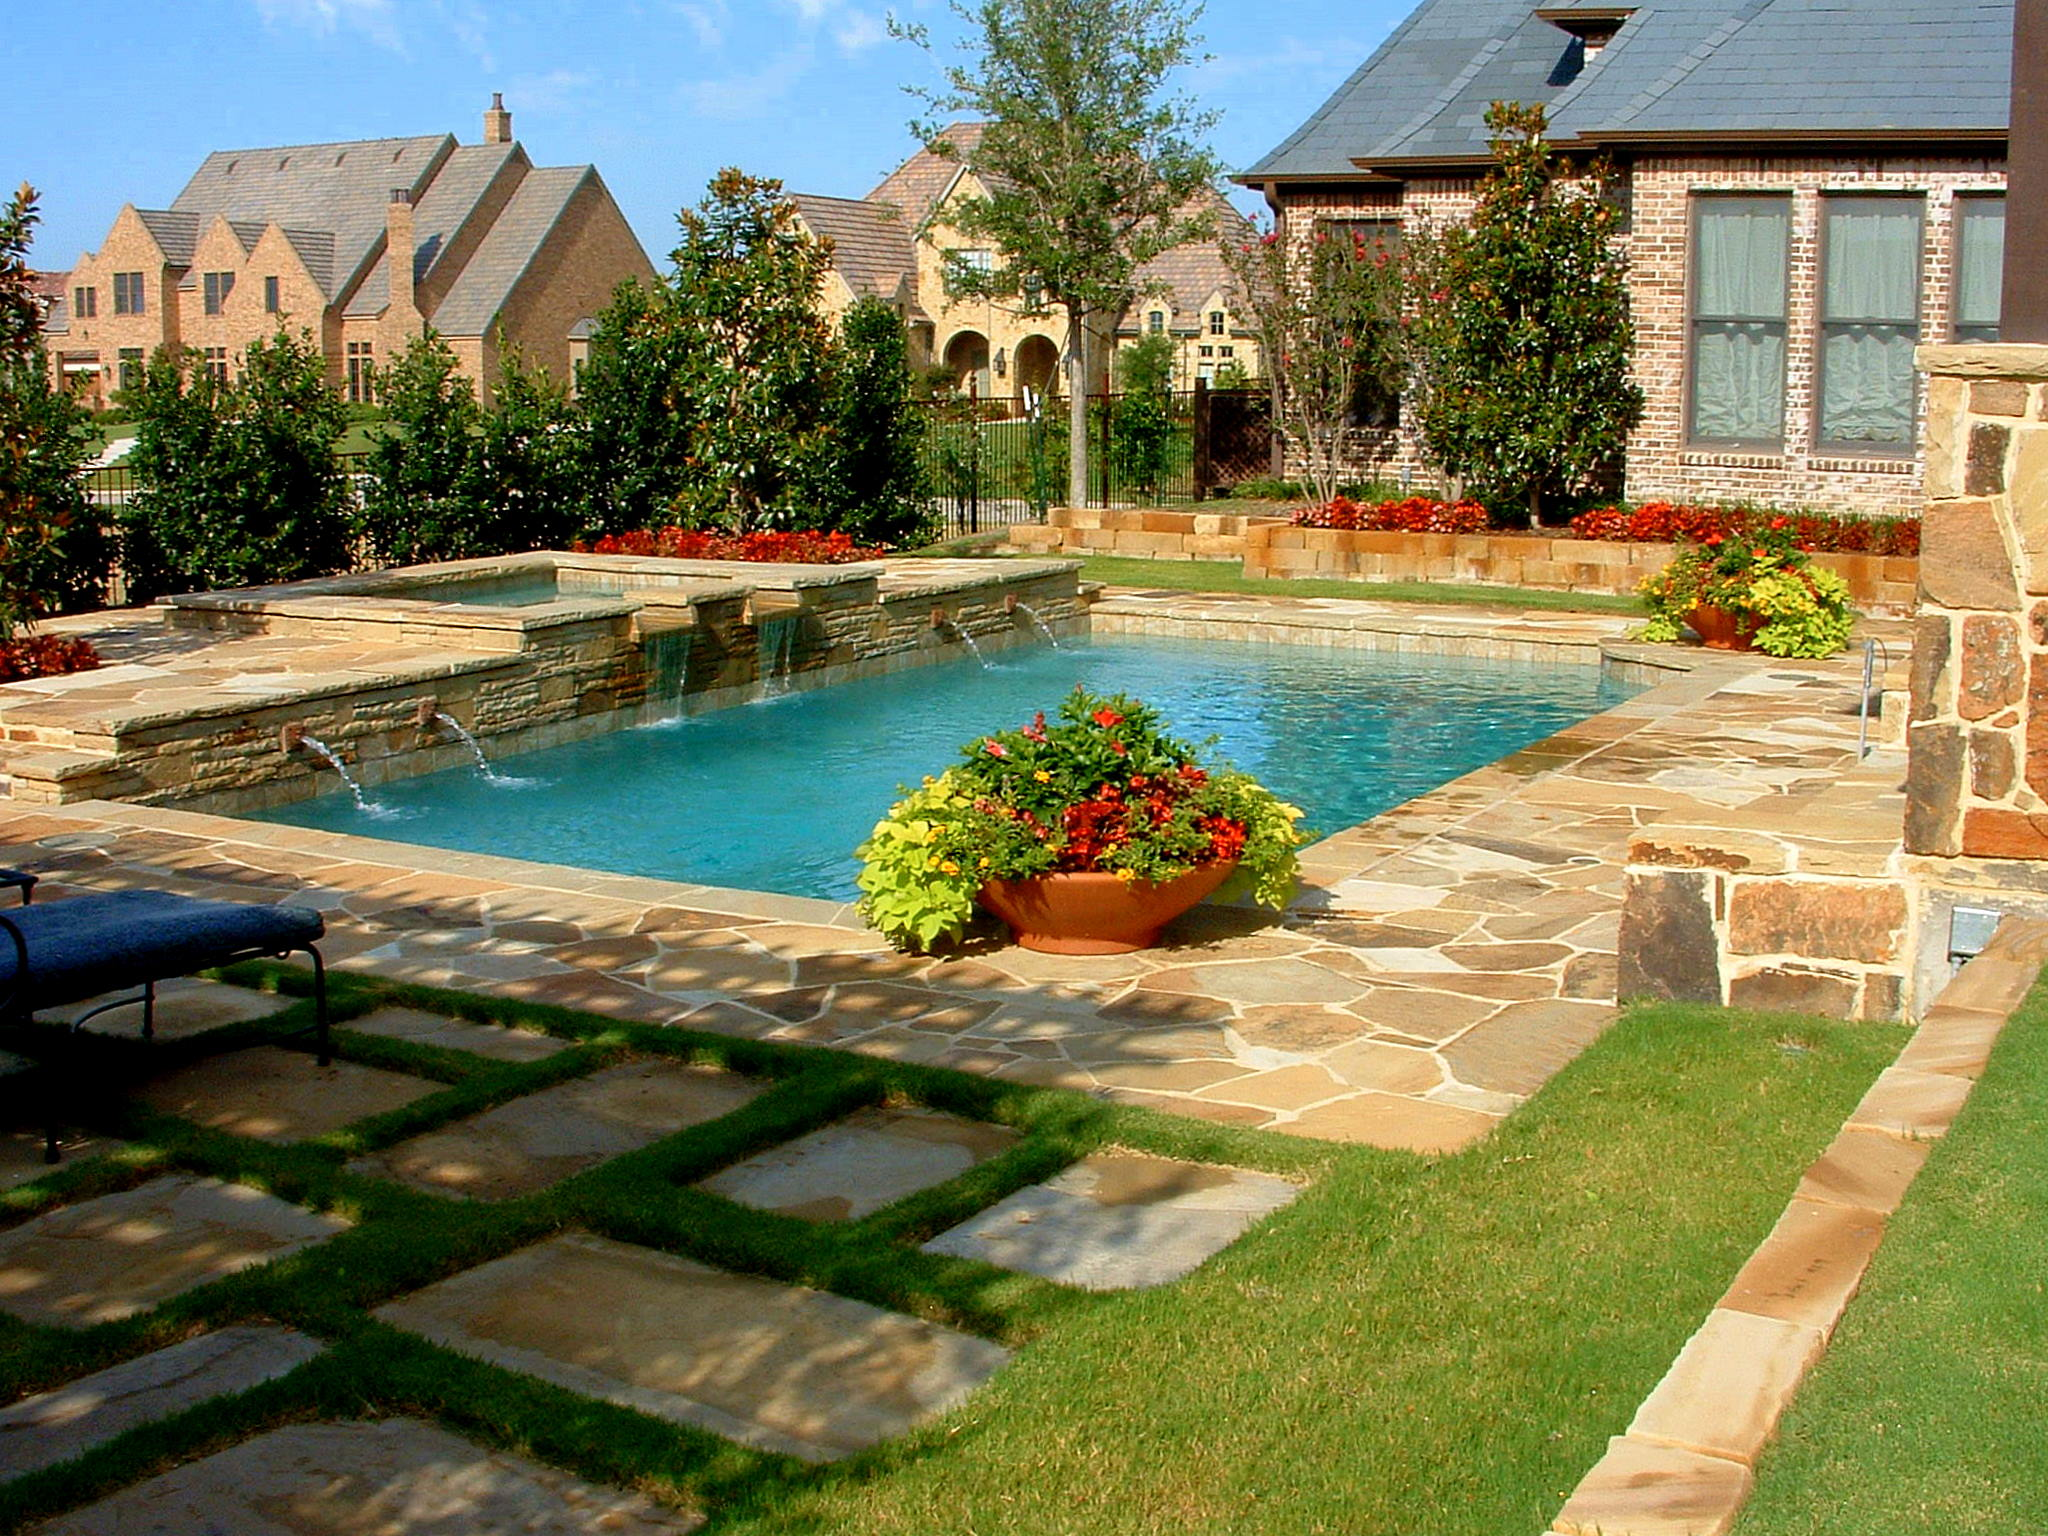 Backyard landscaping ideas swimming pool design for Pool landscaping ideas